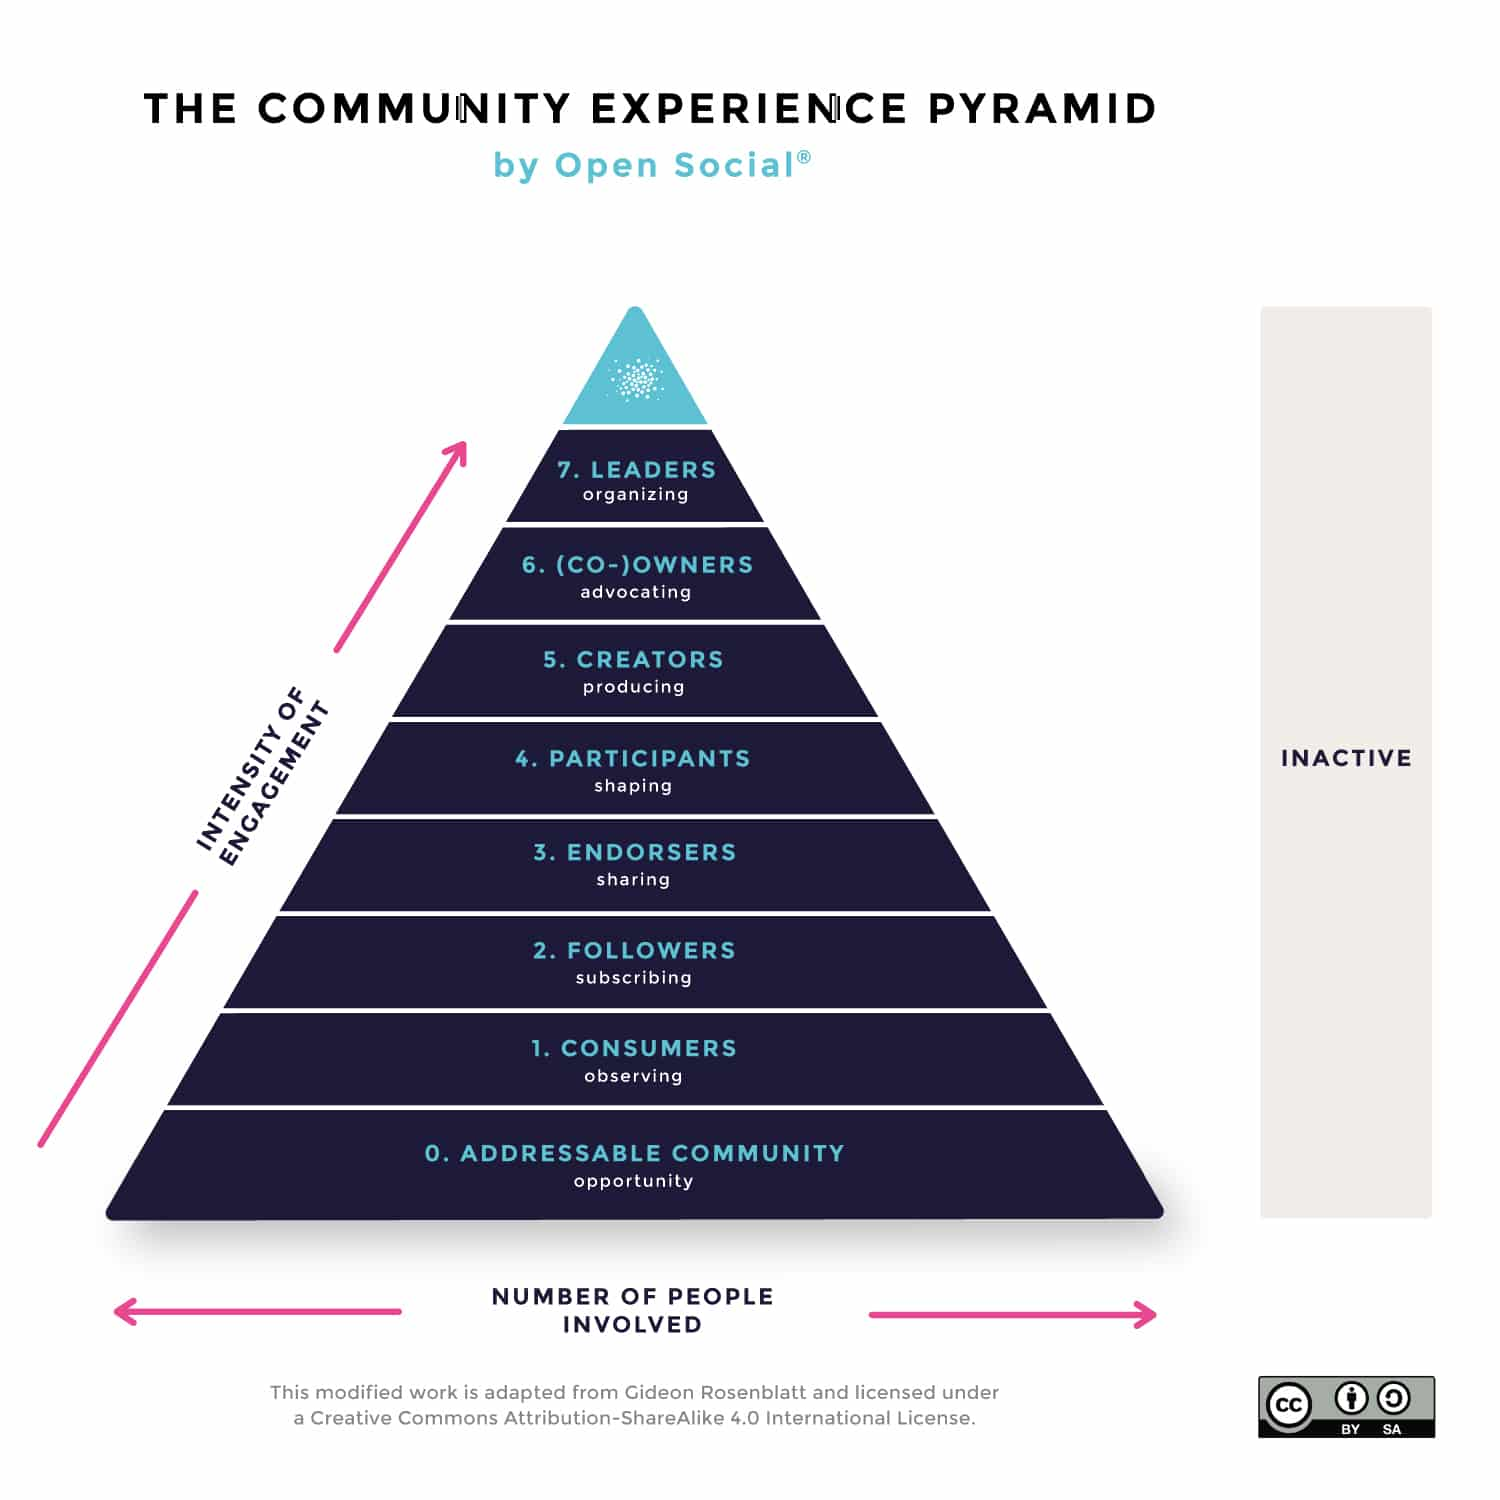 The community Experience pyramid describes the 7 levels of engagement which are 0. addressable community, 1. Consumers, 2. Followers, 3. Endorsers, 4. Participants, 5. Creators, 6. (Co-)owners, 7. Leaders